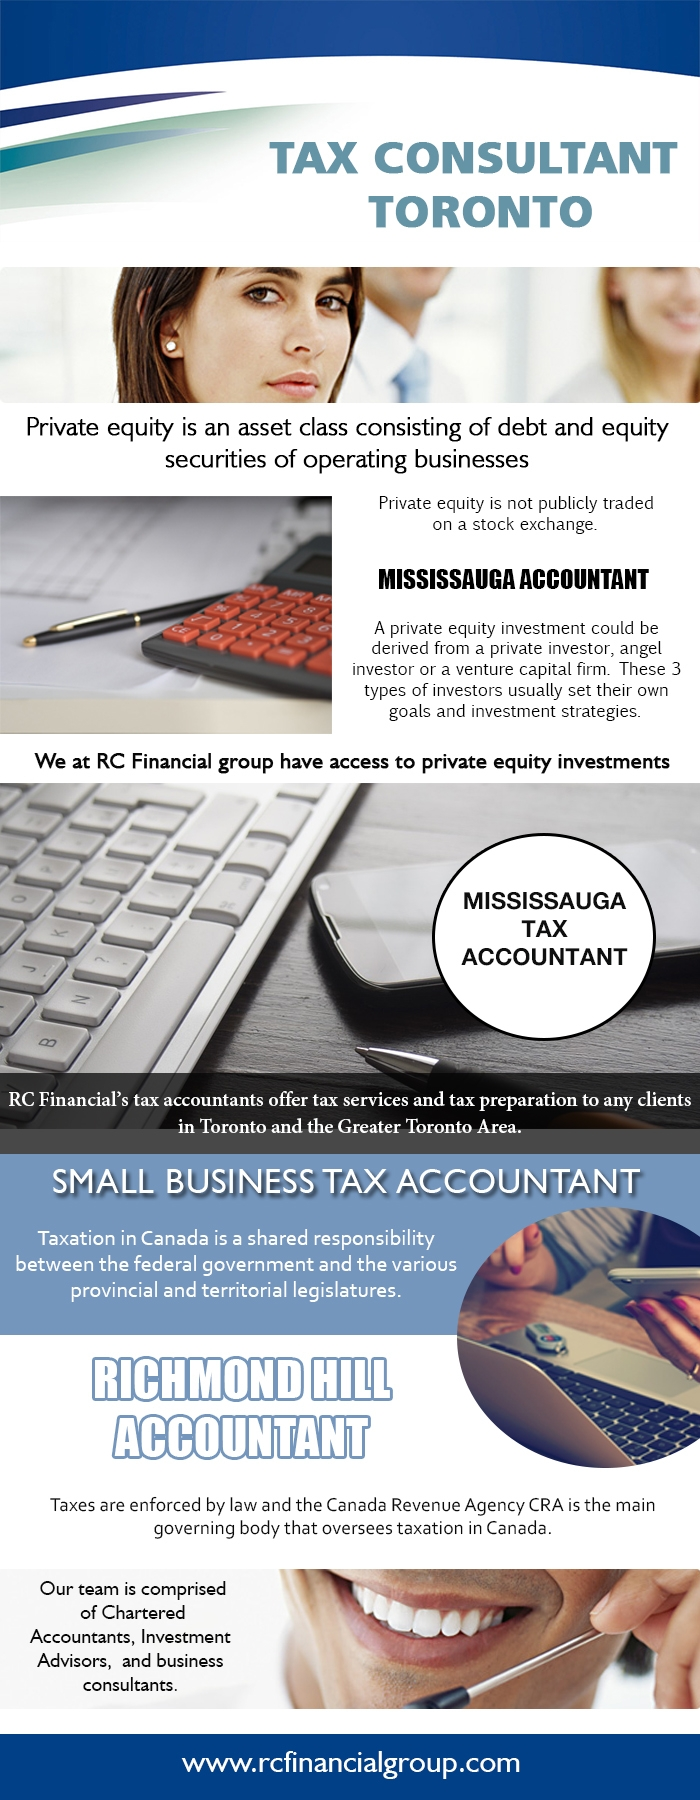 Toronto Accountant Site majorit - mississaugaaccountant | ello